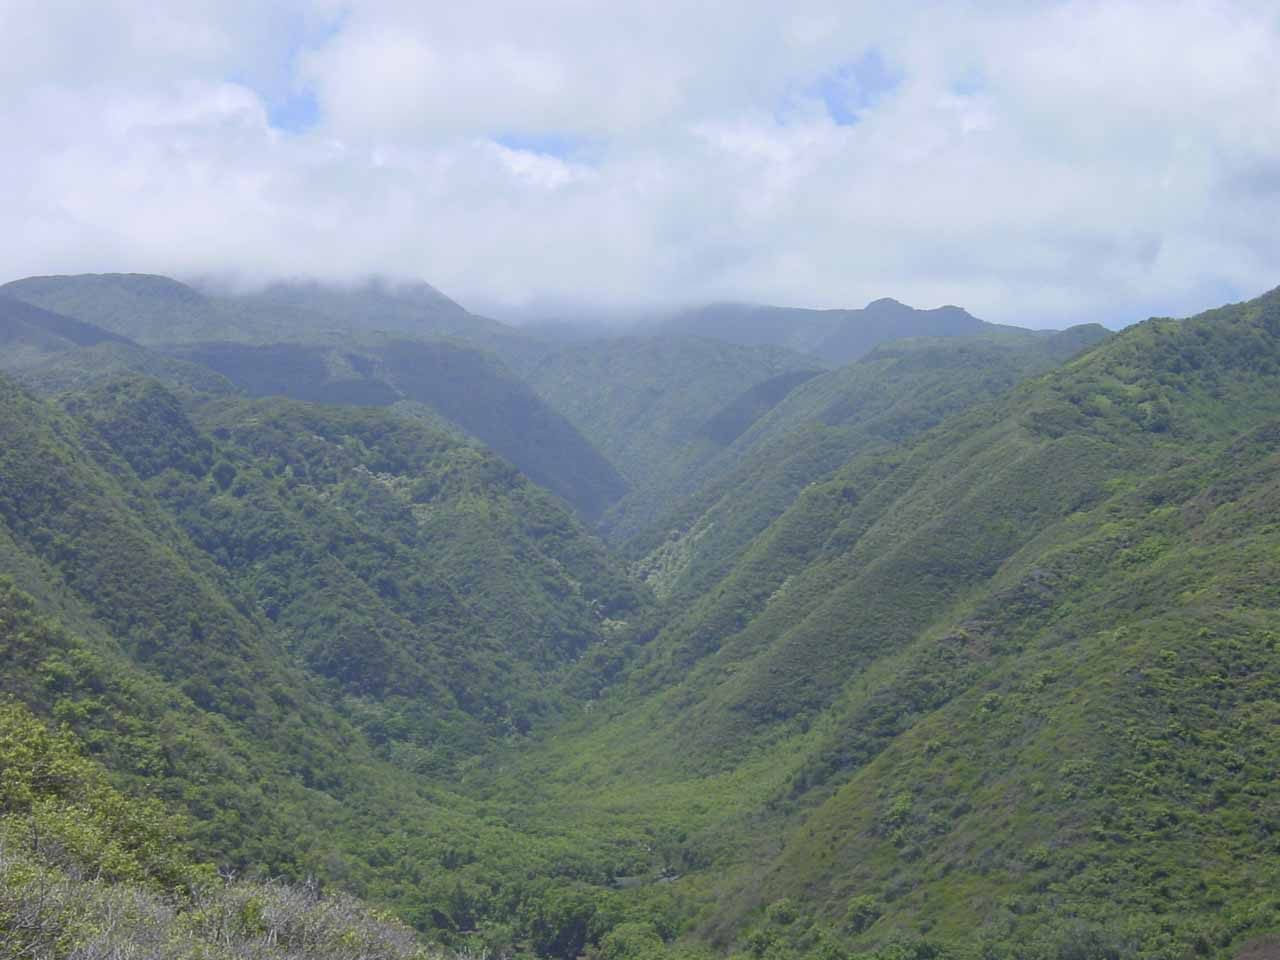 The mouth of Honokohau Valley